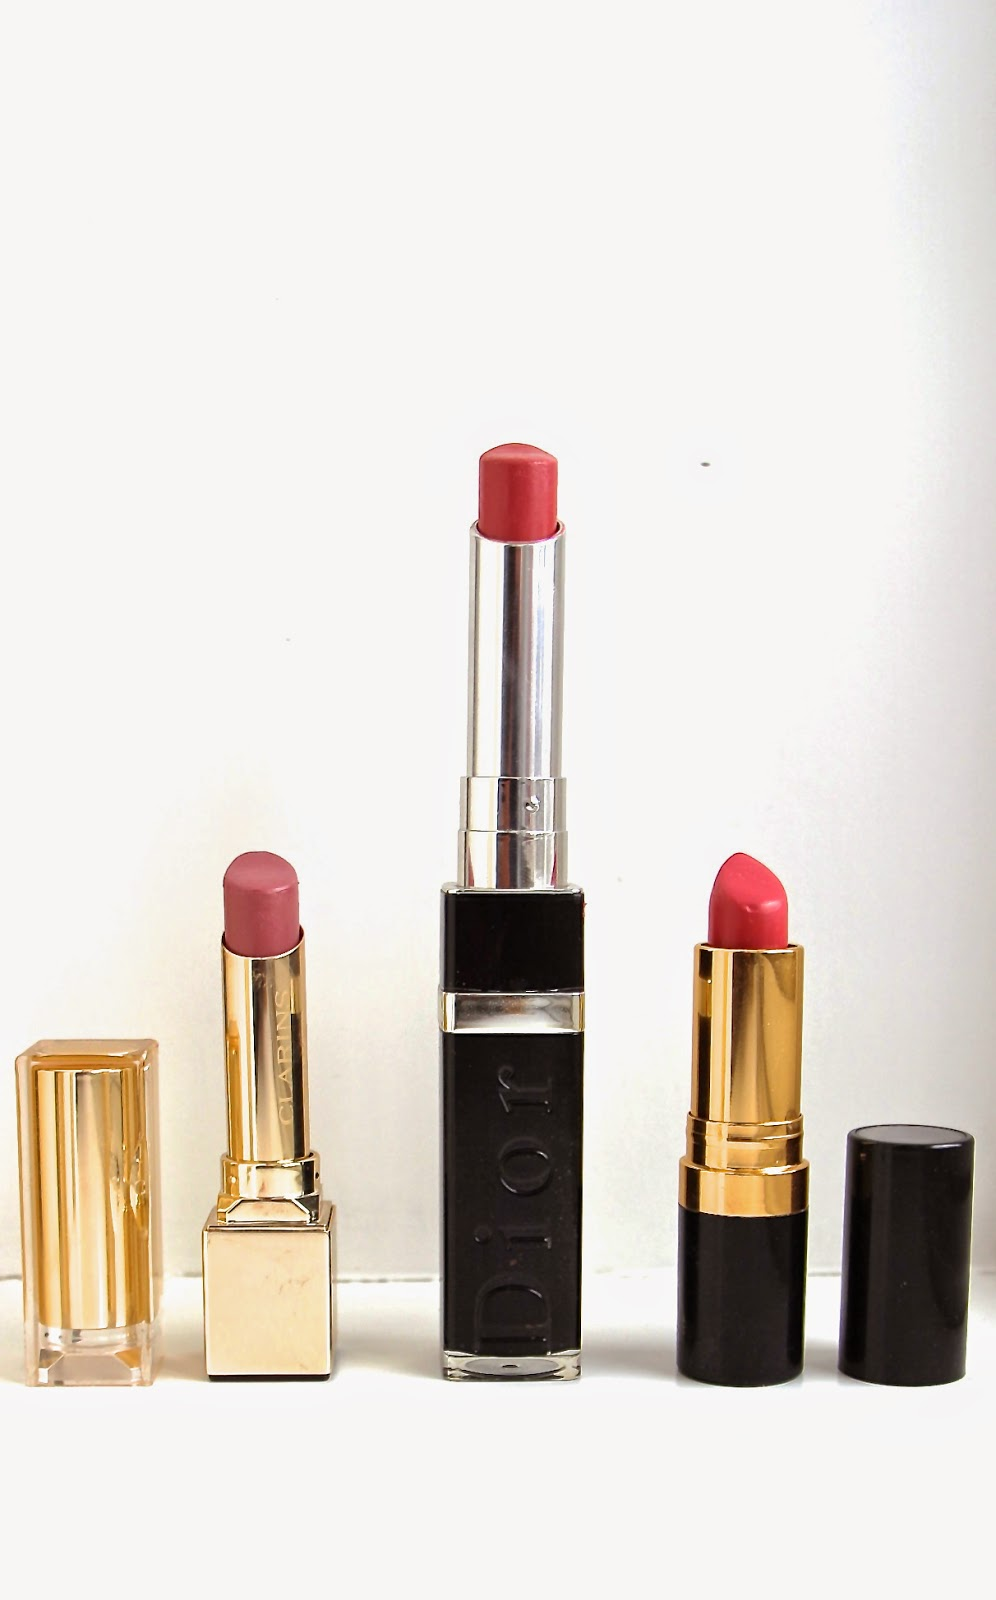 EmmasBeginning Top 3 Lipsticks For Spring